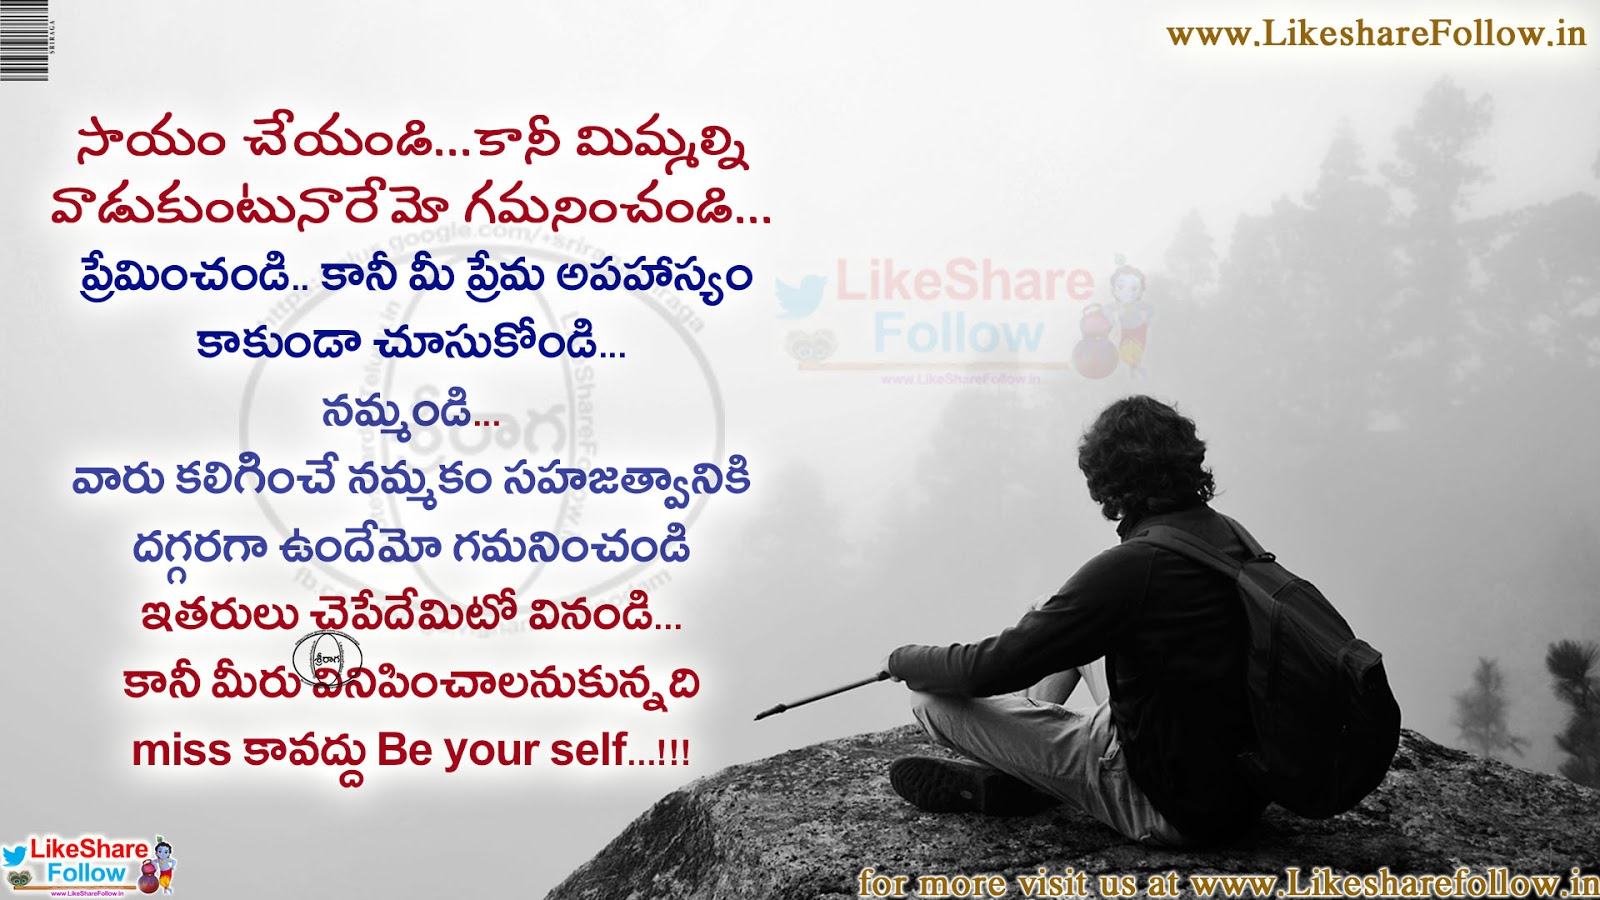 Best Life Quotes Best Life Quotes In Teluguinspirational Messages About Life